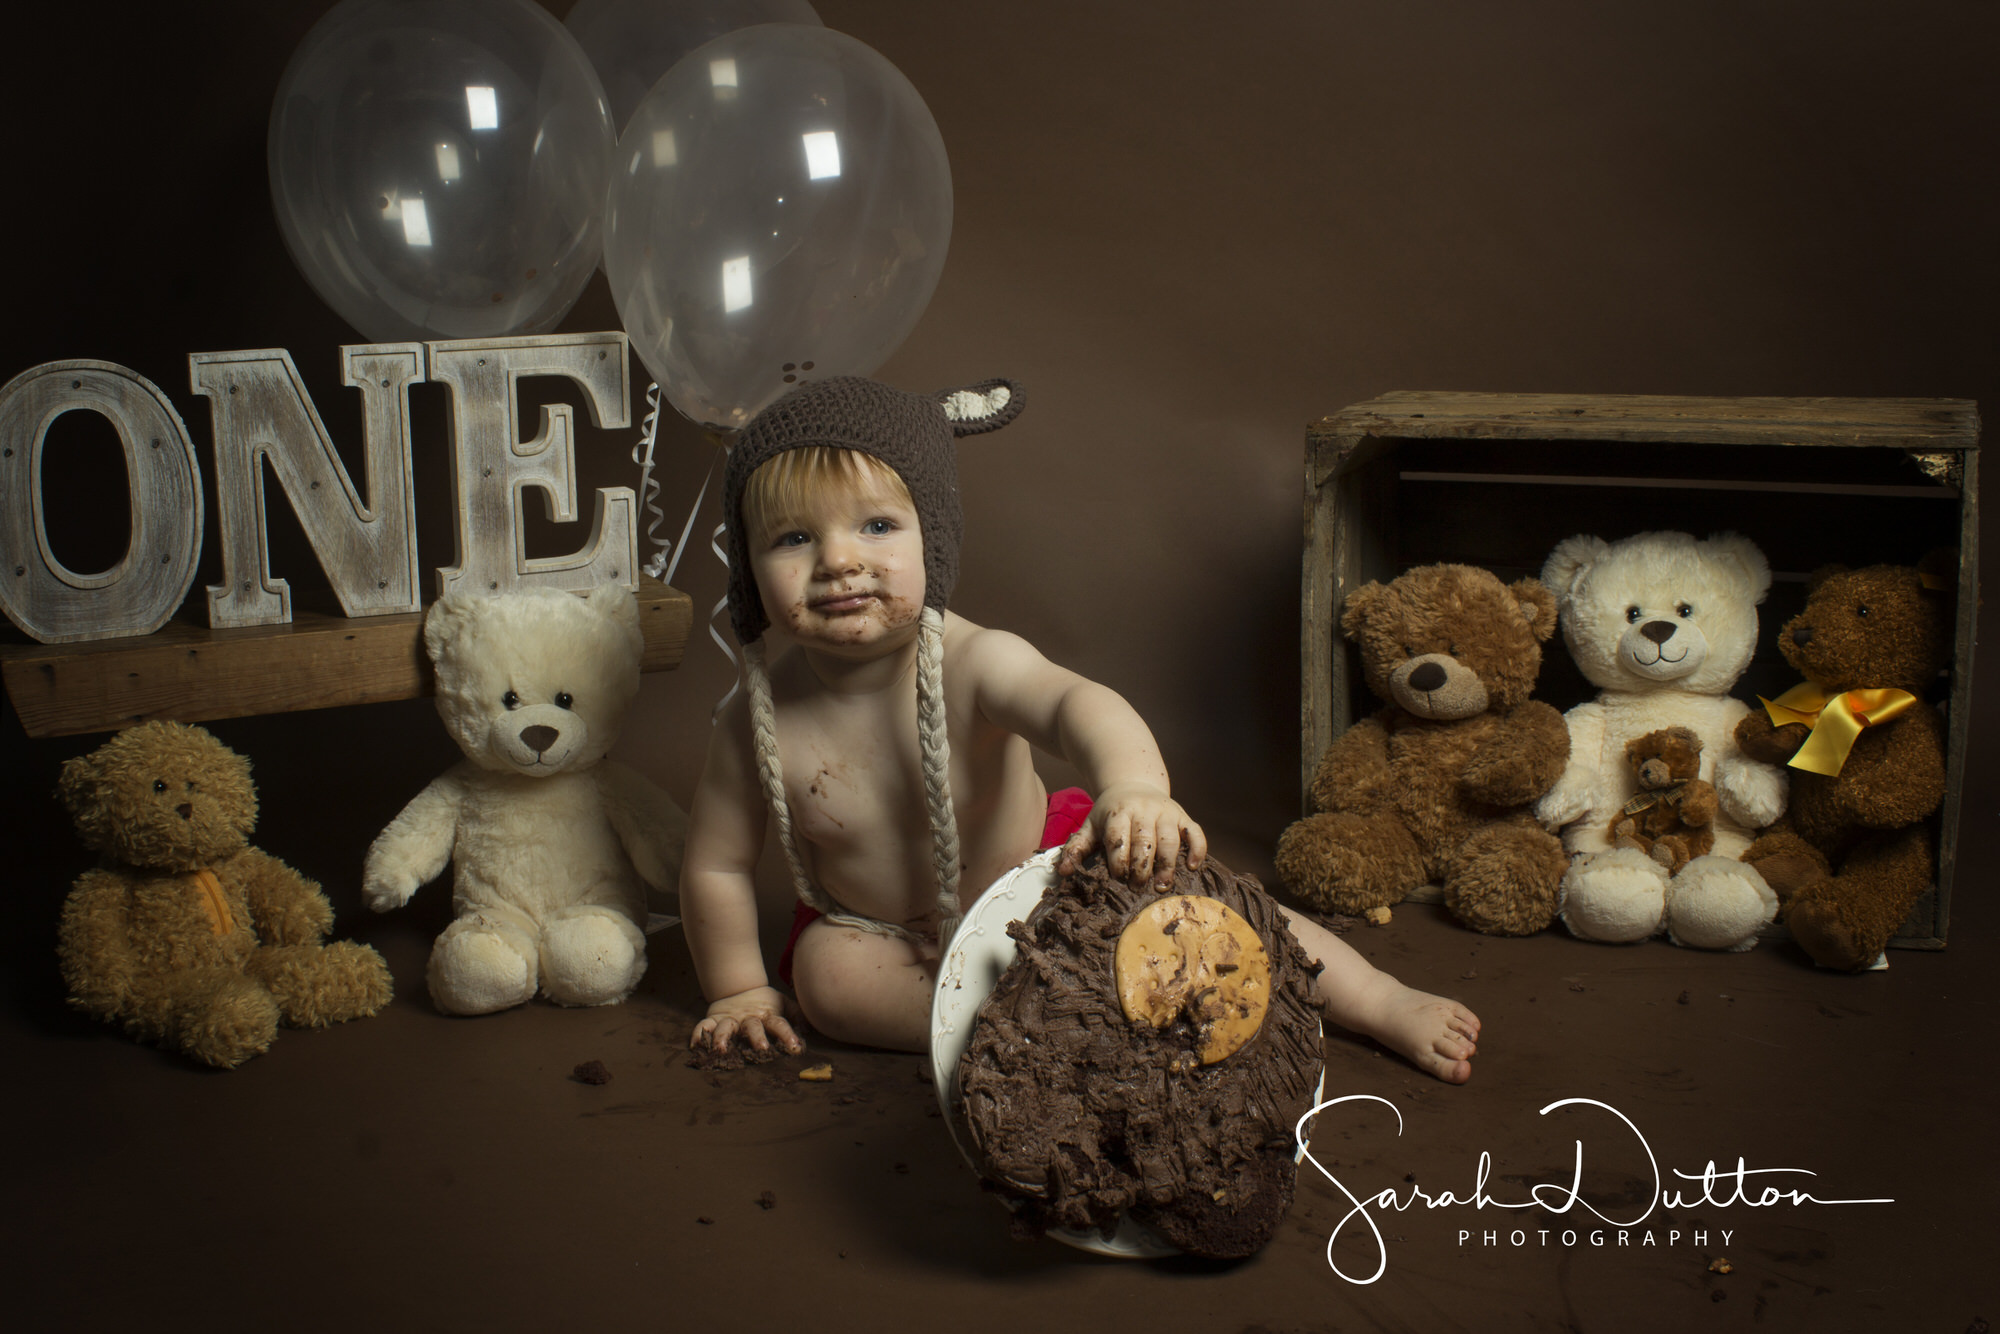 Cake Smash, Family and Baby Photography taken in the Photography studio in Whitchurch Hampshire